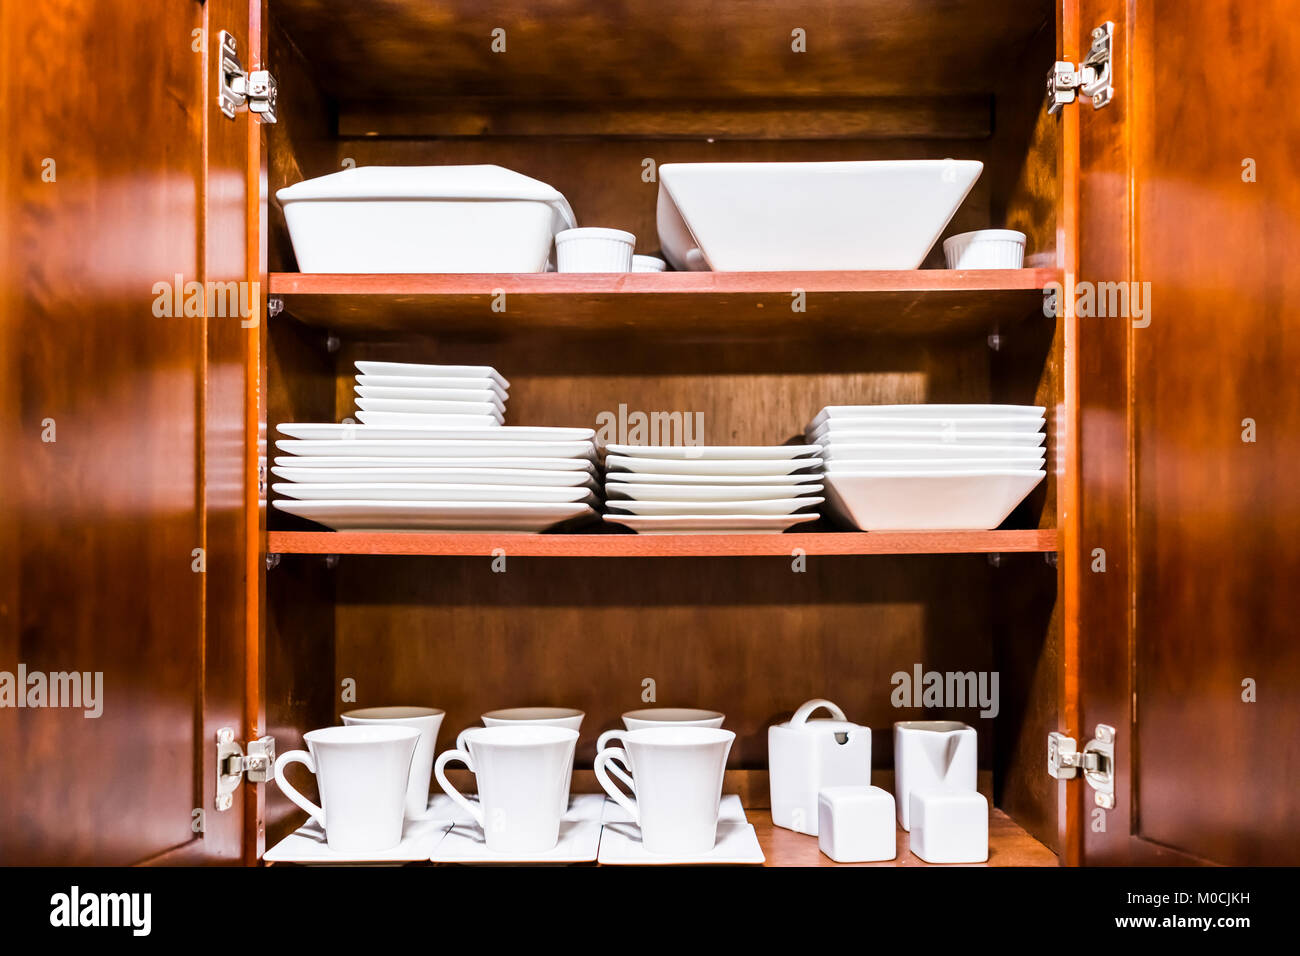 Wood Kitchen Cabinet Doors Open Wooden Kitchen Cabinet Door Cupboard With Many White Dishes